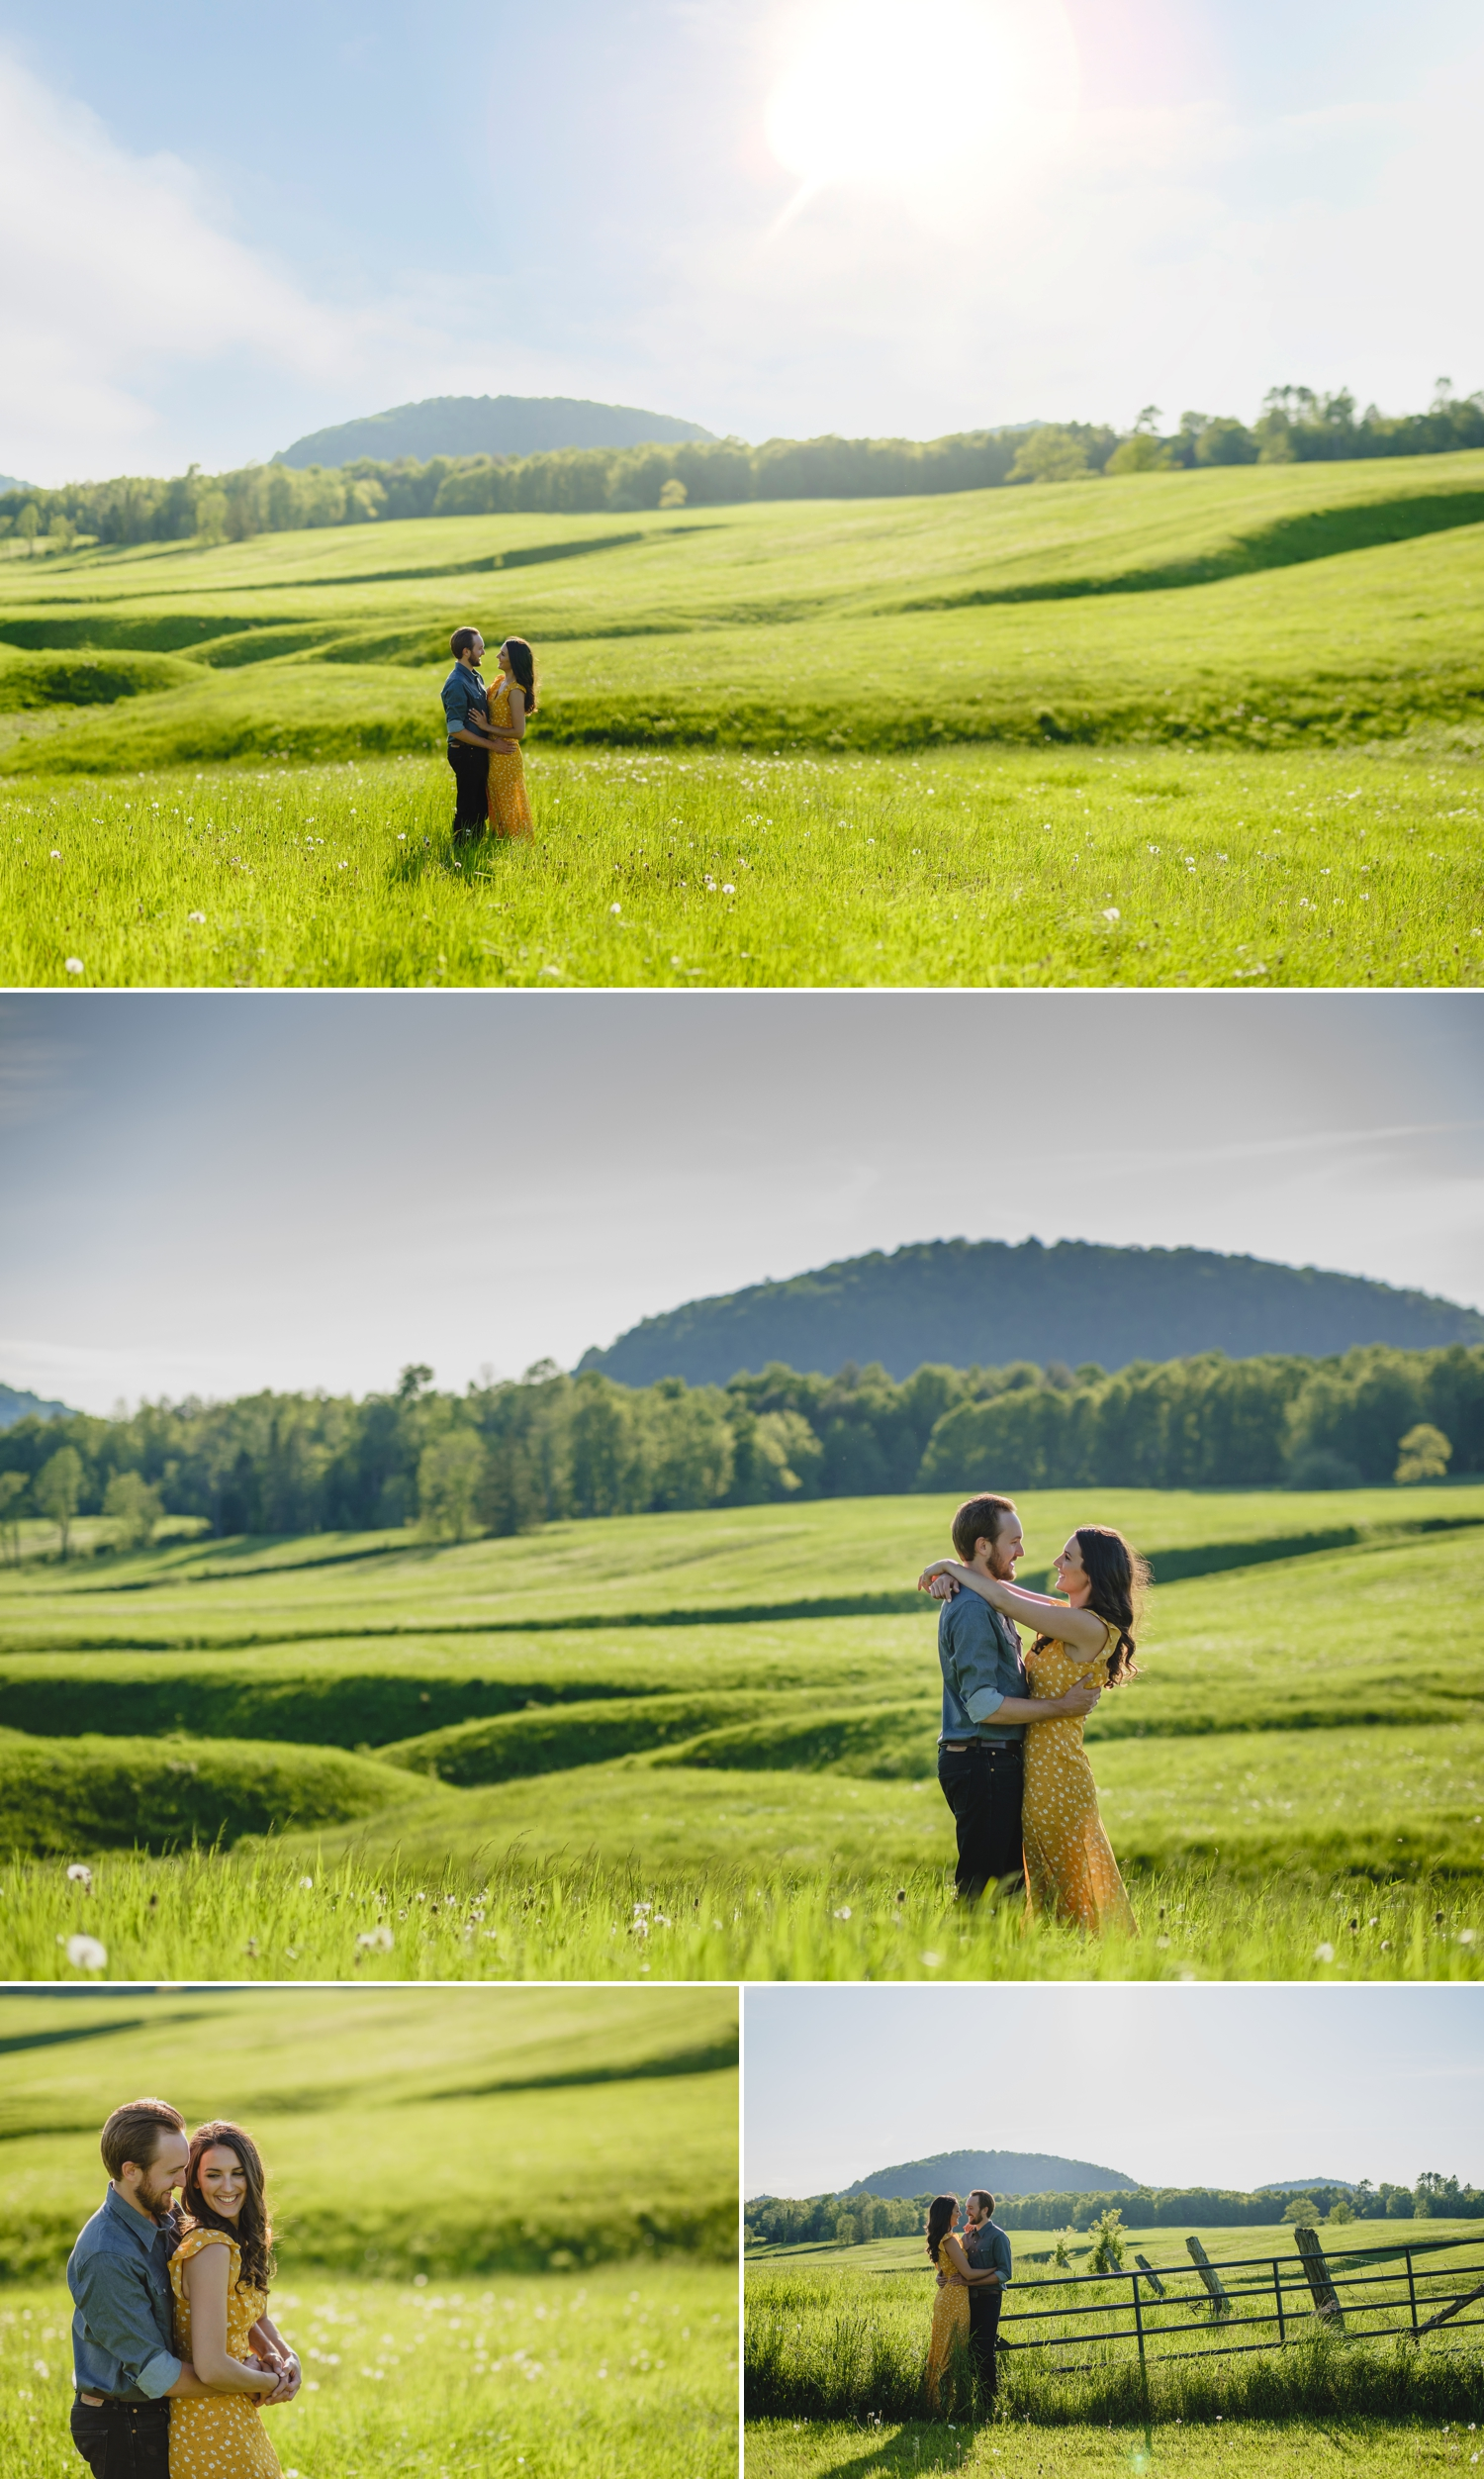 country couple posing for enagement photos in a beautiful farm field